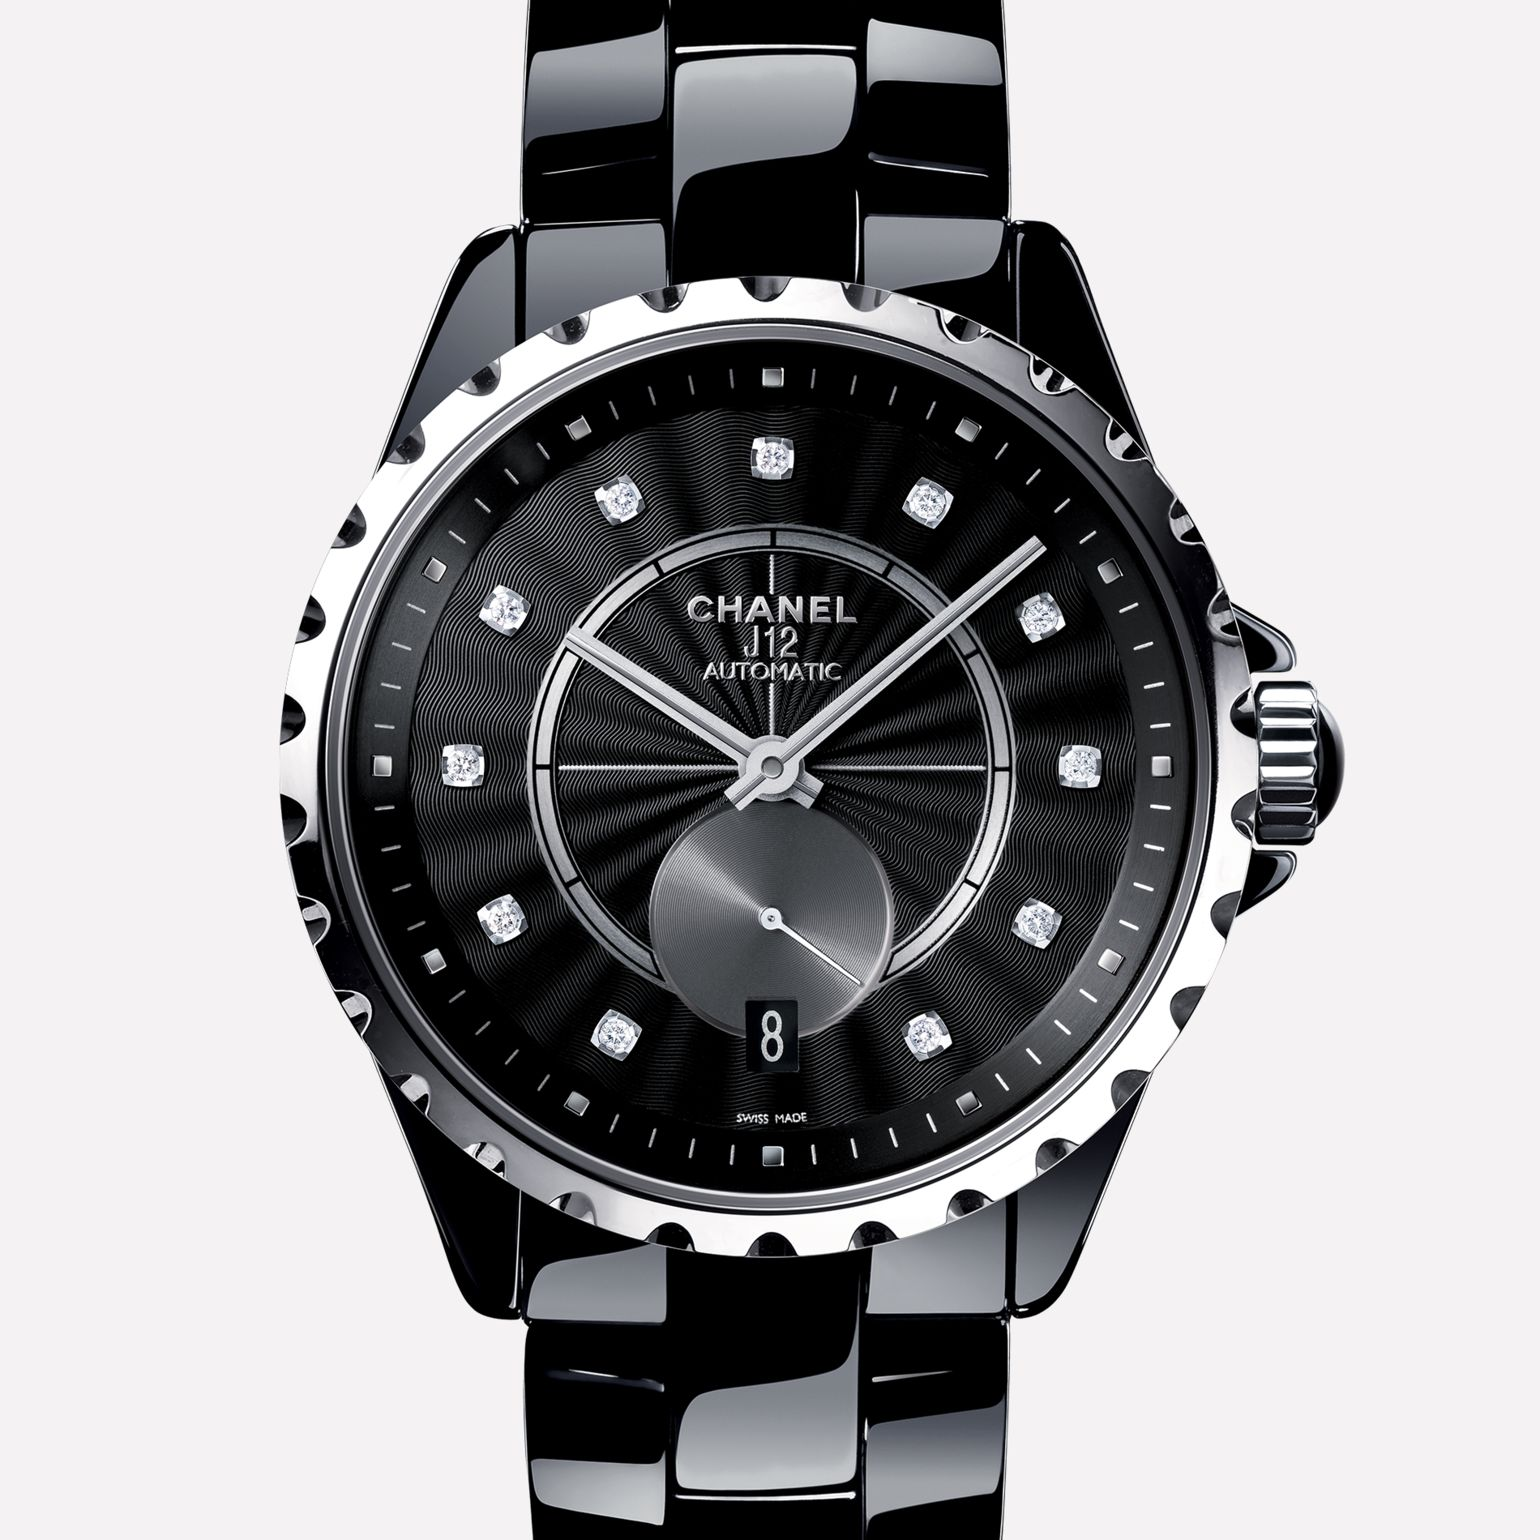 Arf Rolex Submariner Replica